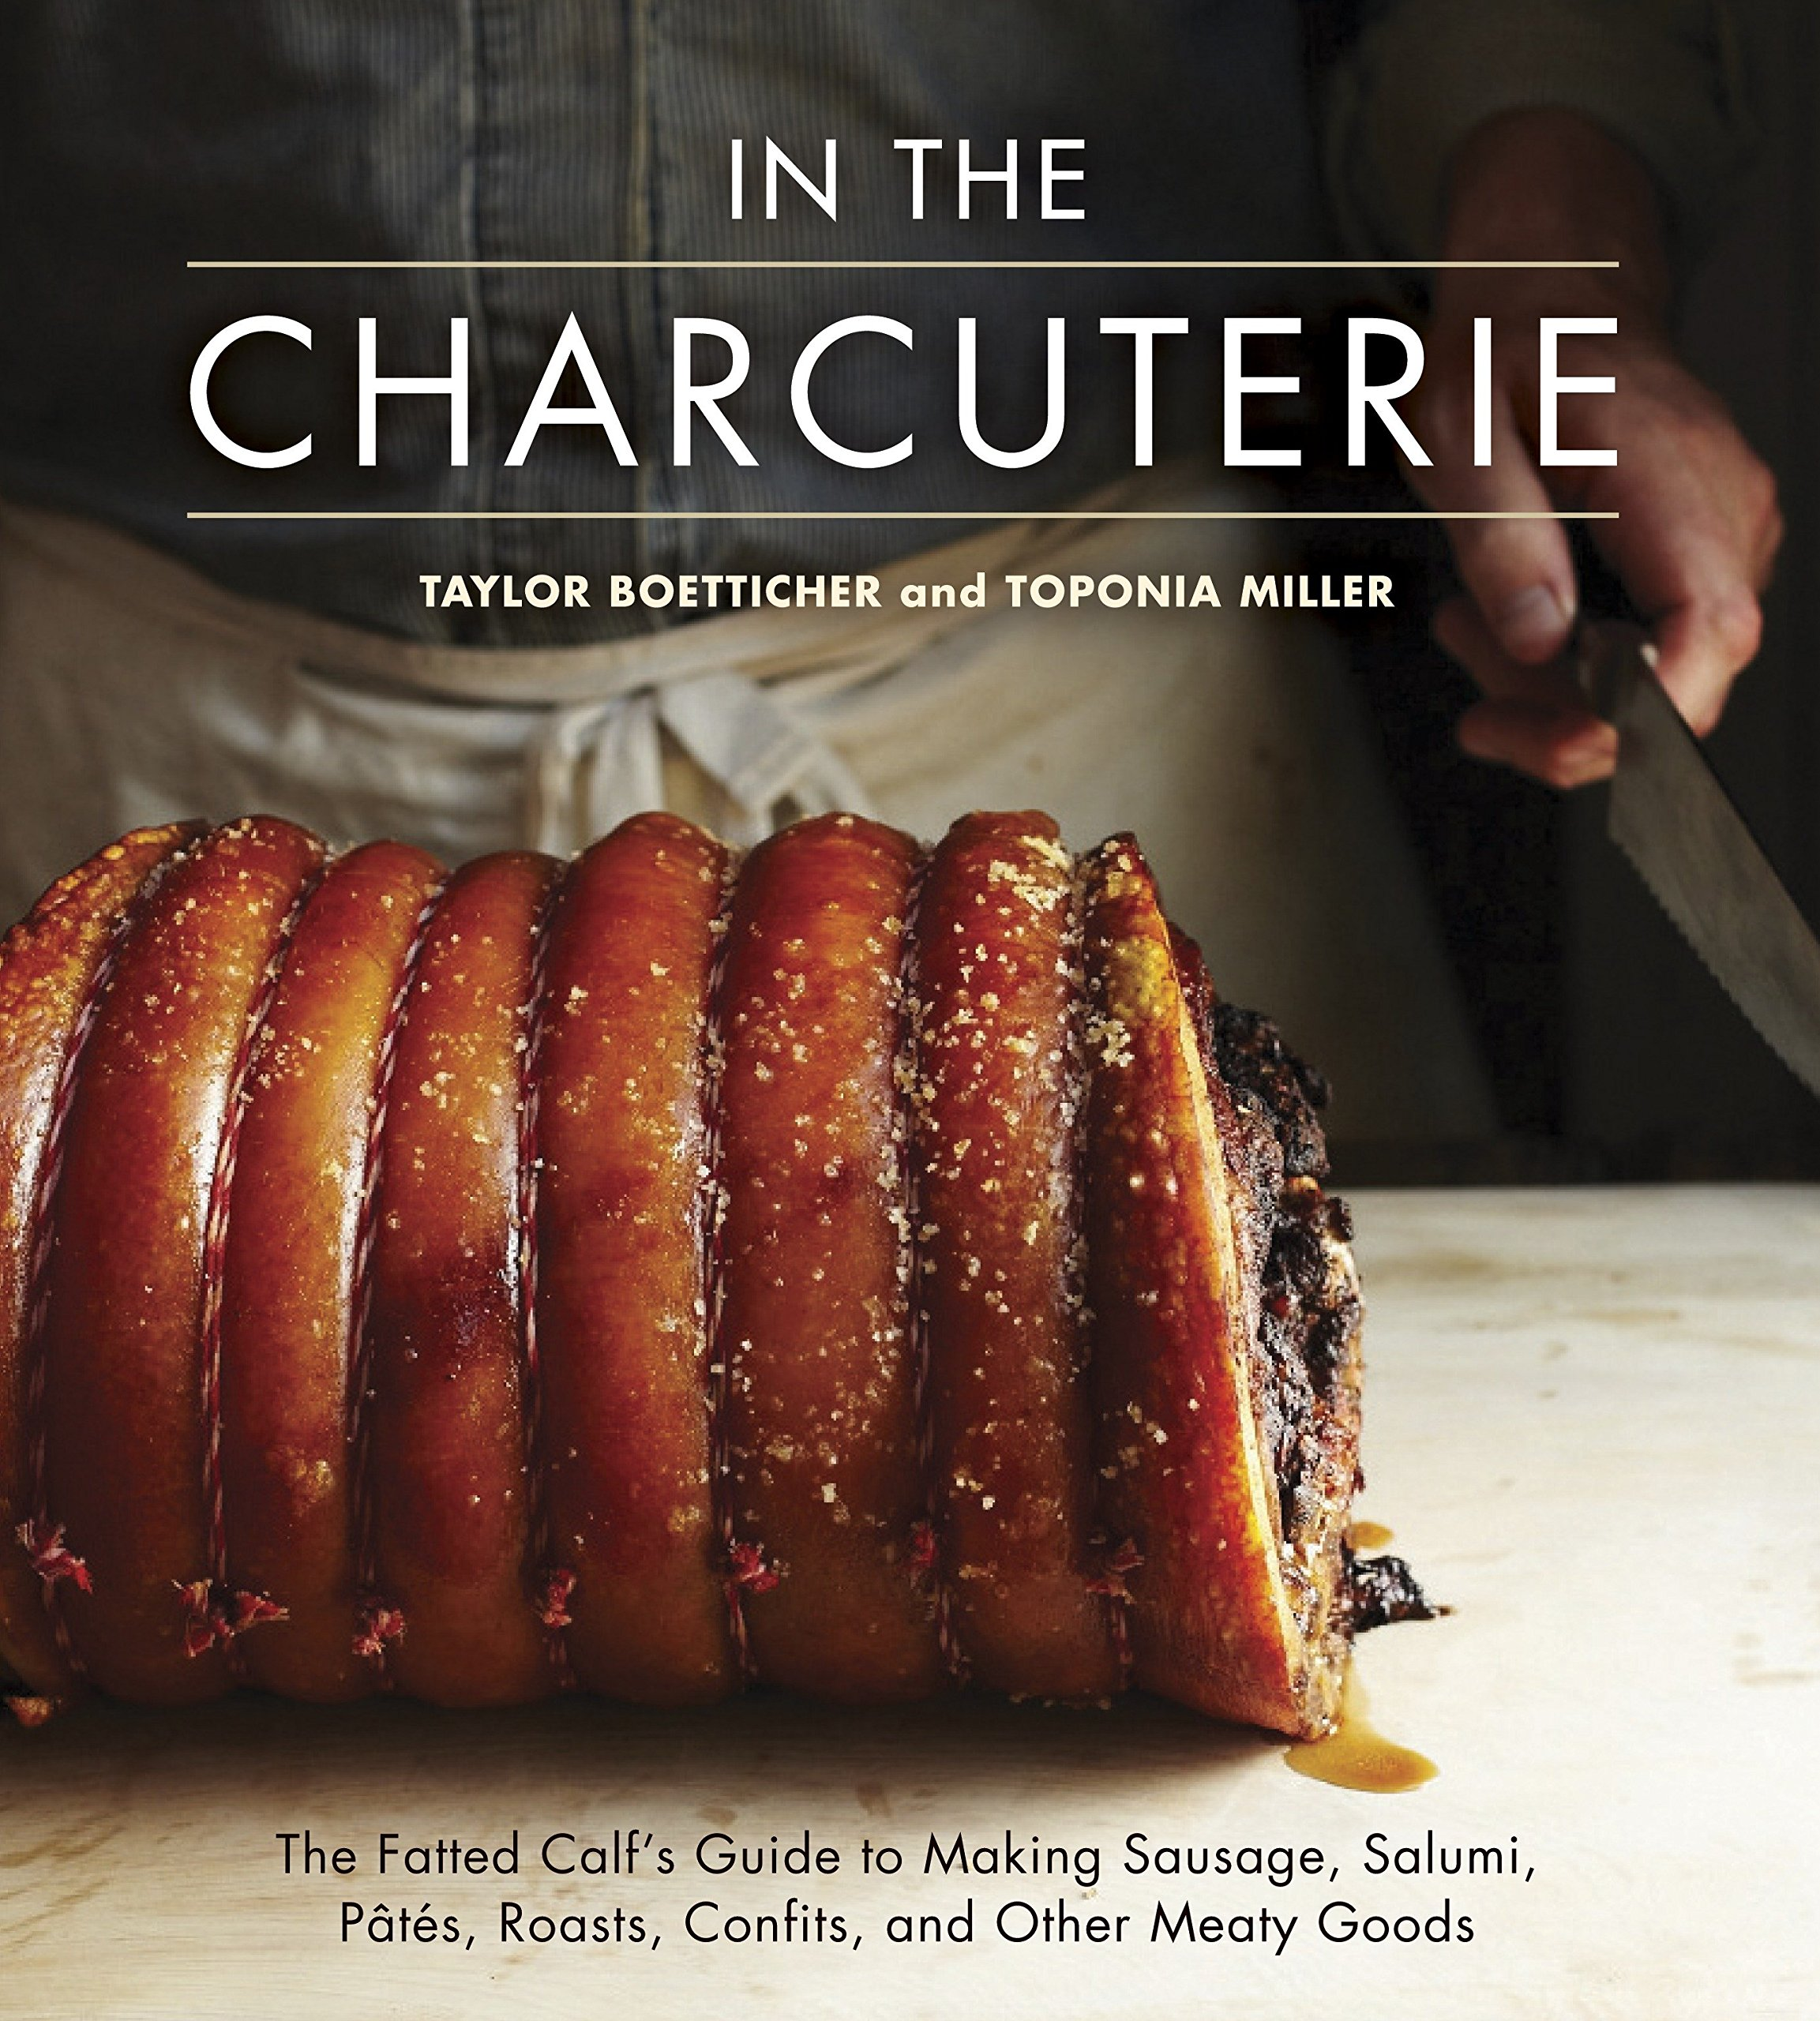 Taylor Boetticher - In the Charcuterie